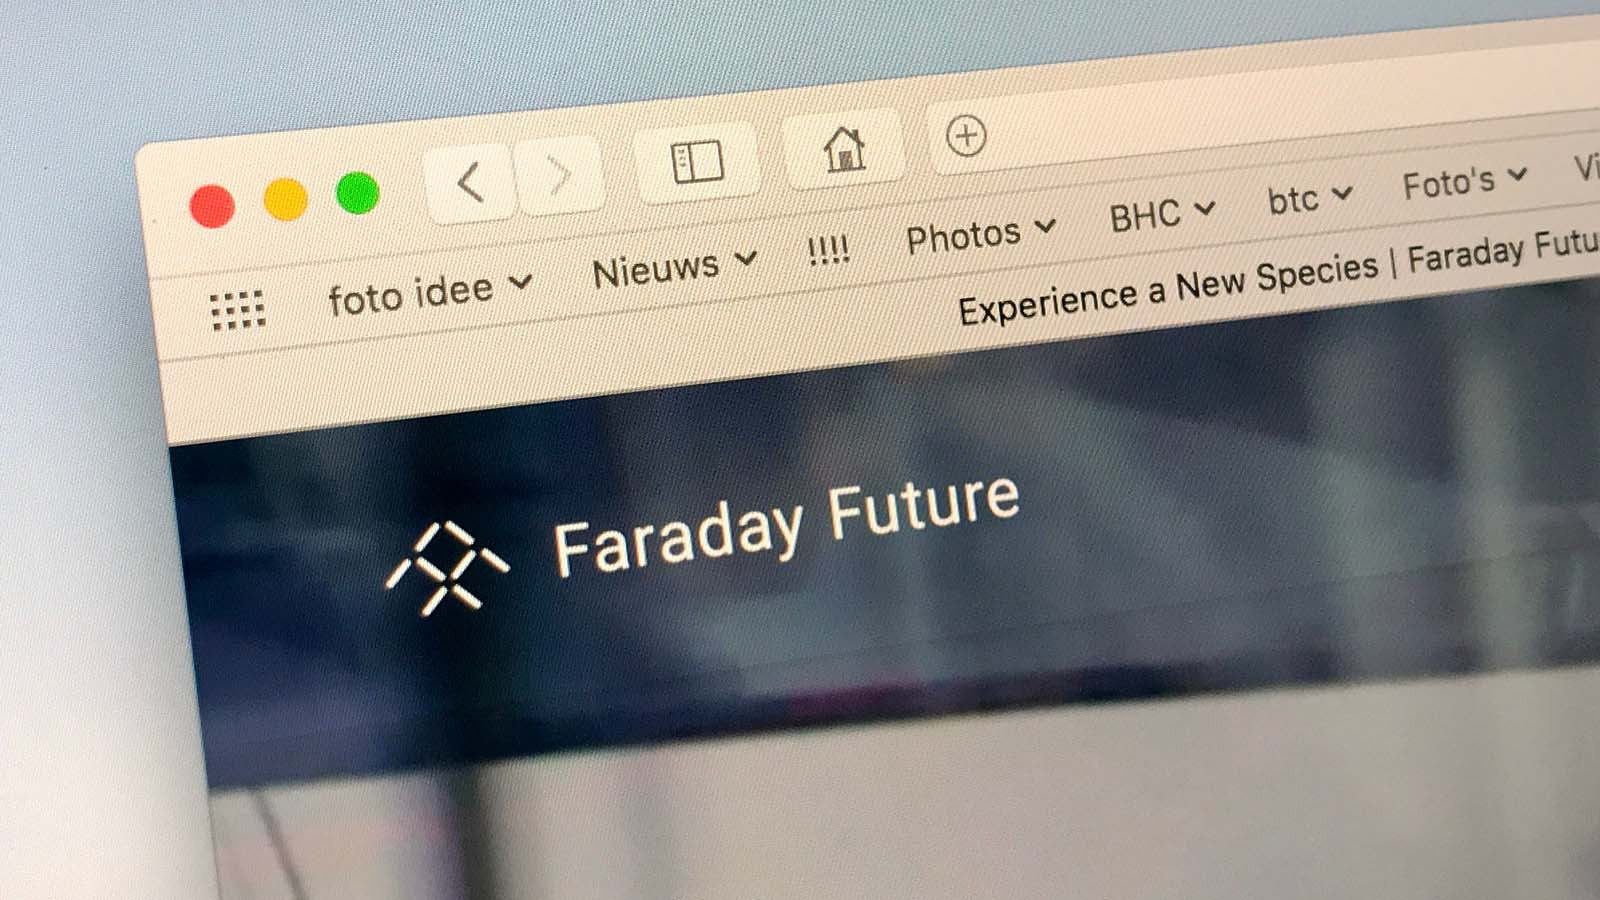 ffie stock 12 things to know about tesla competitor faraday 1626972050 1548112132